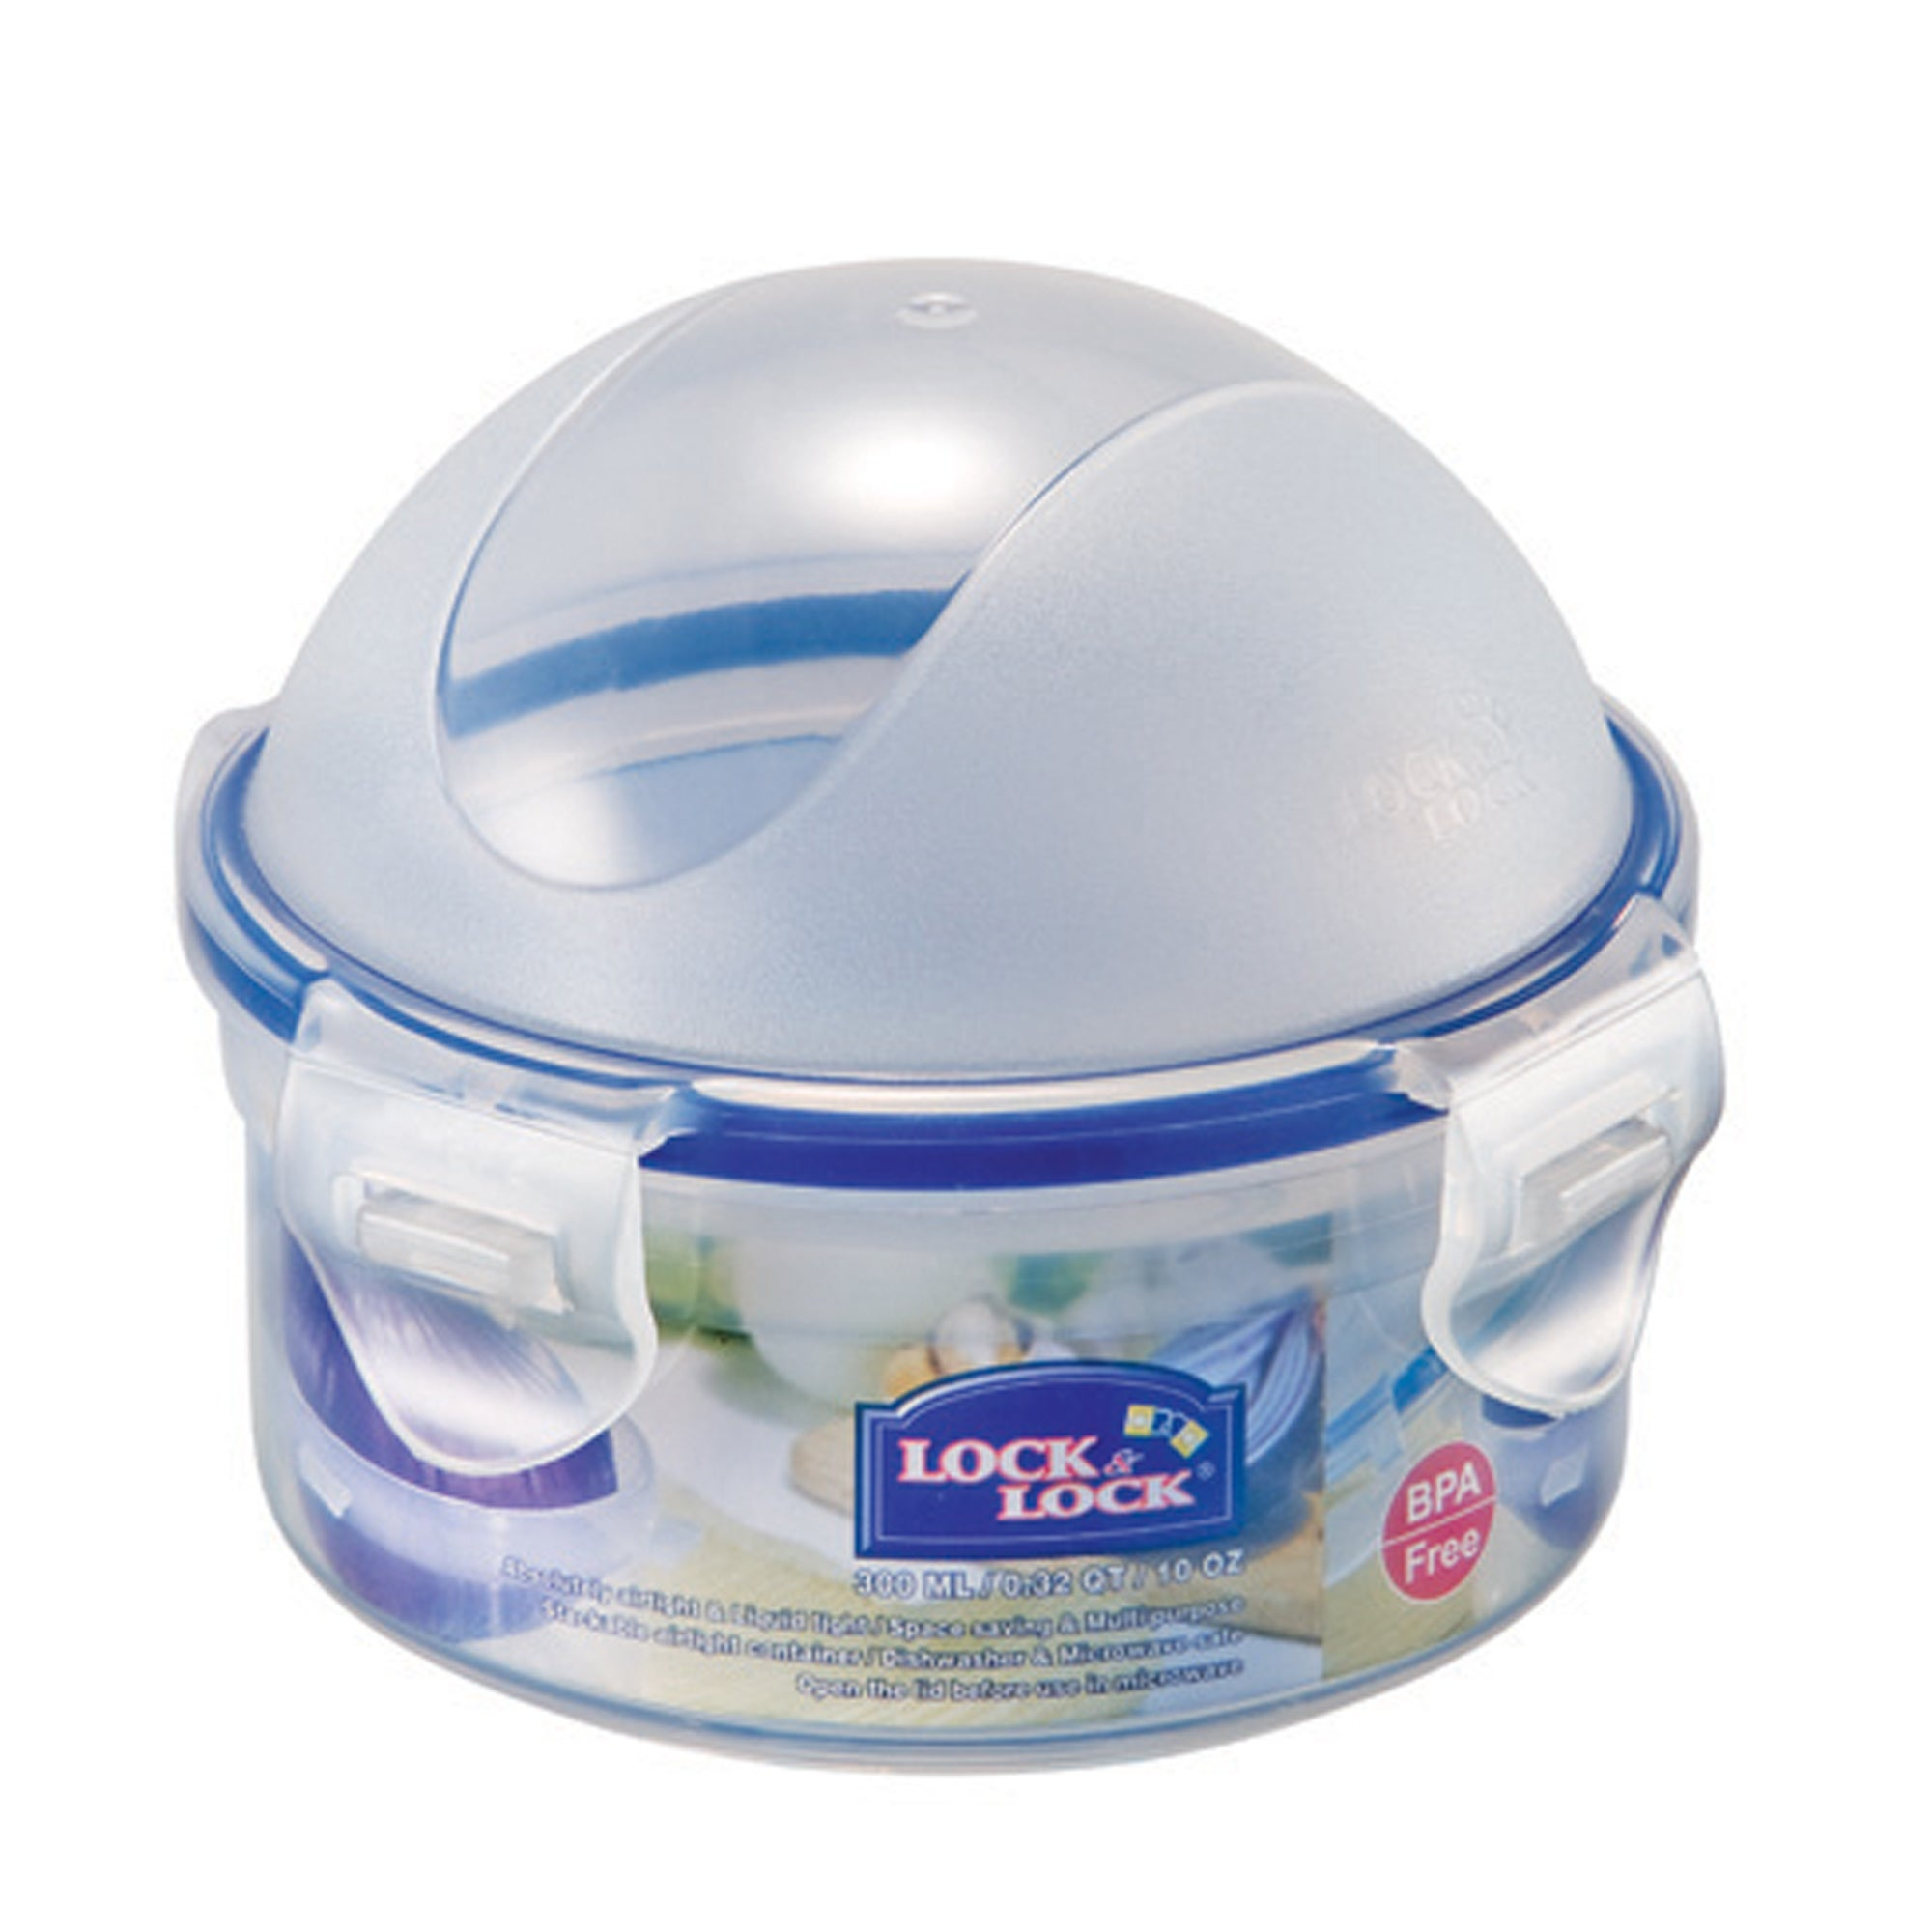 Lock & Lock Round Food Container with Domed Lid